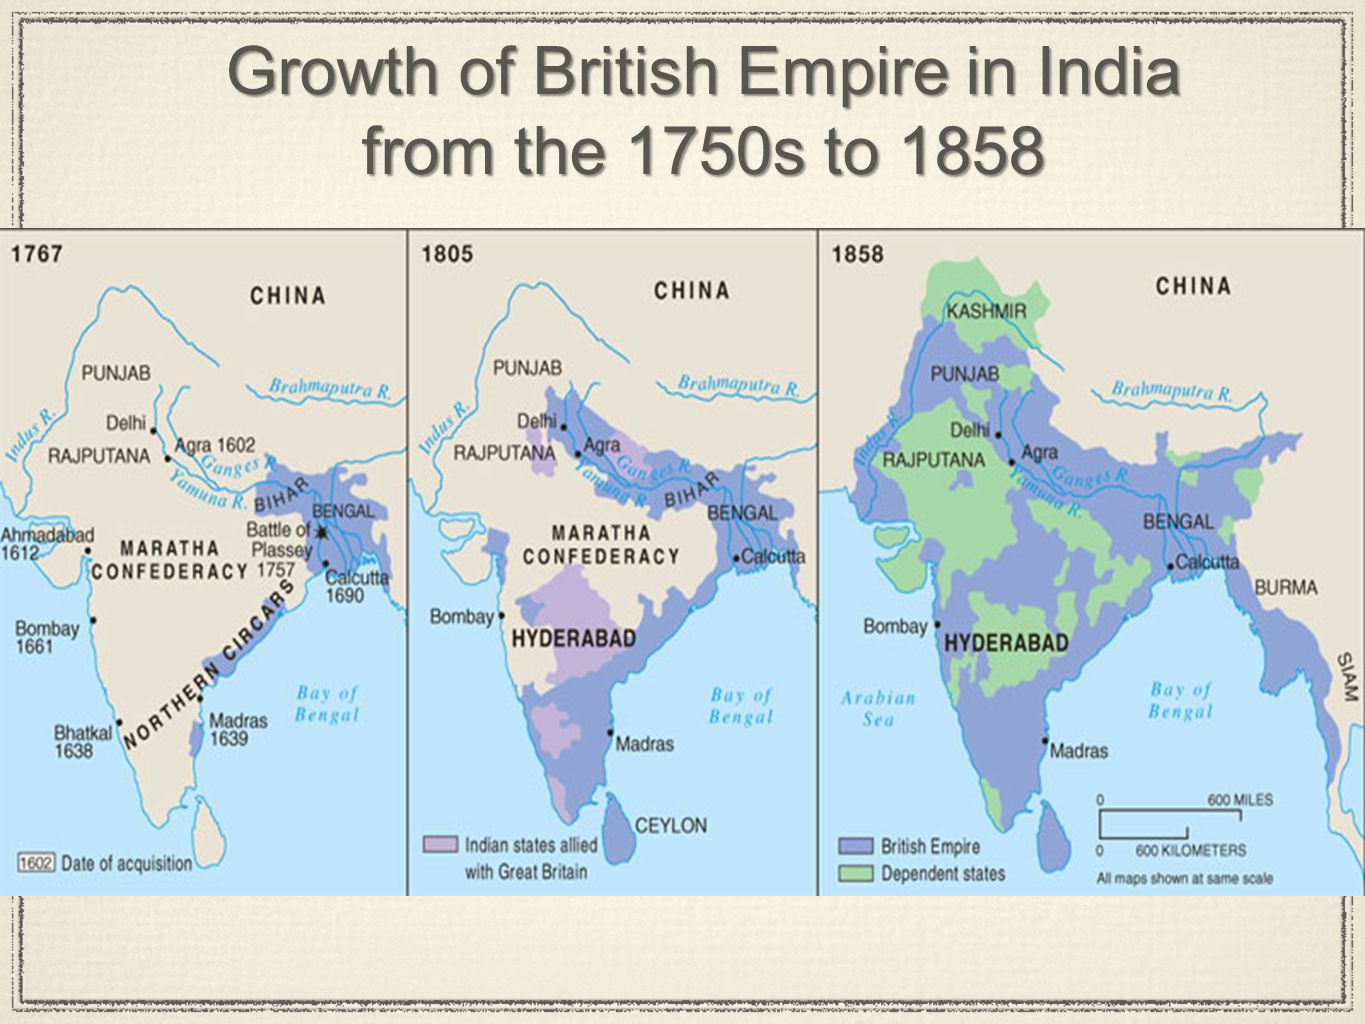 Growth of British Empire in India